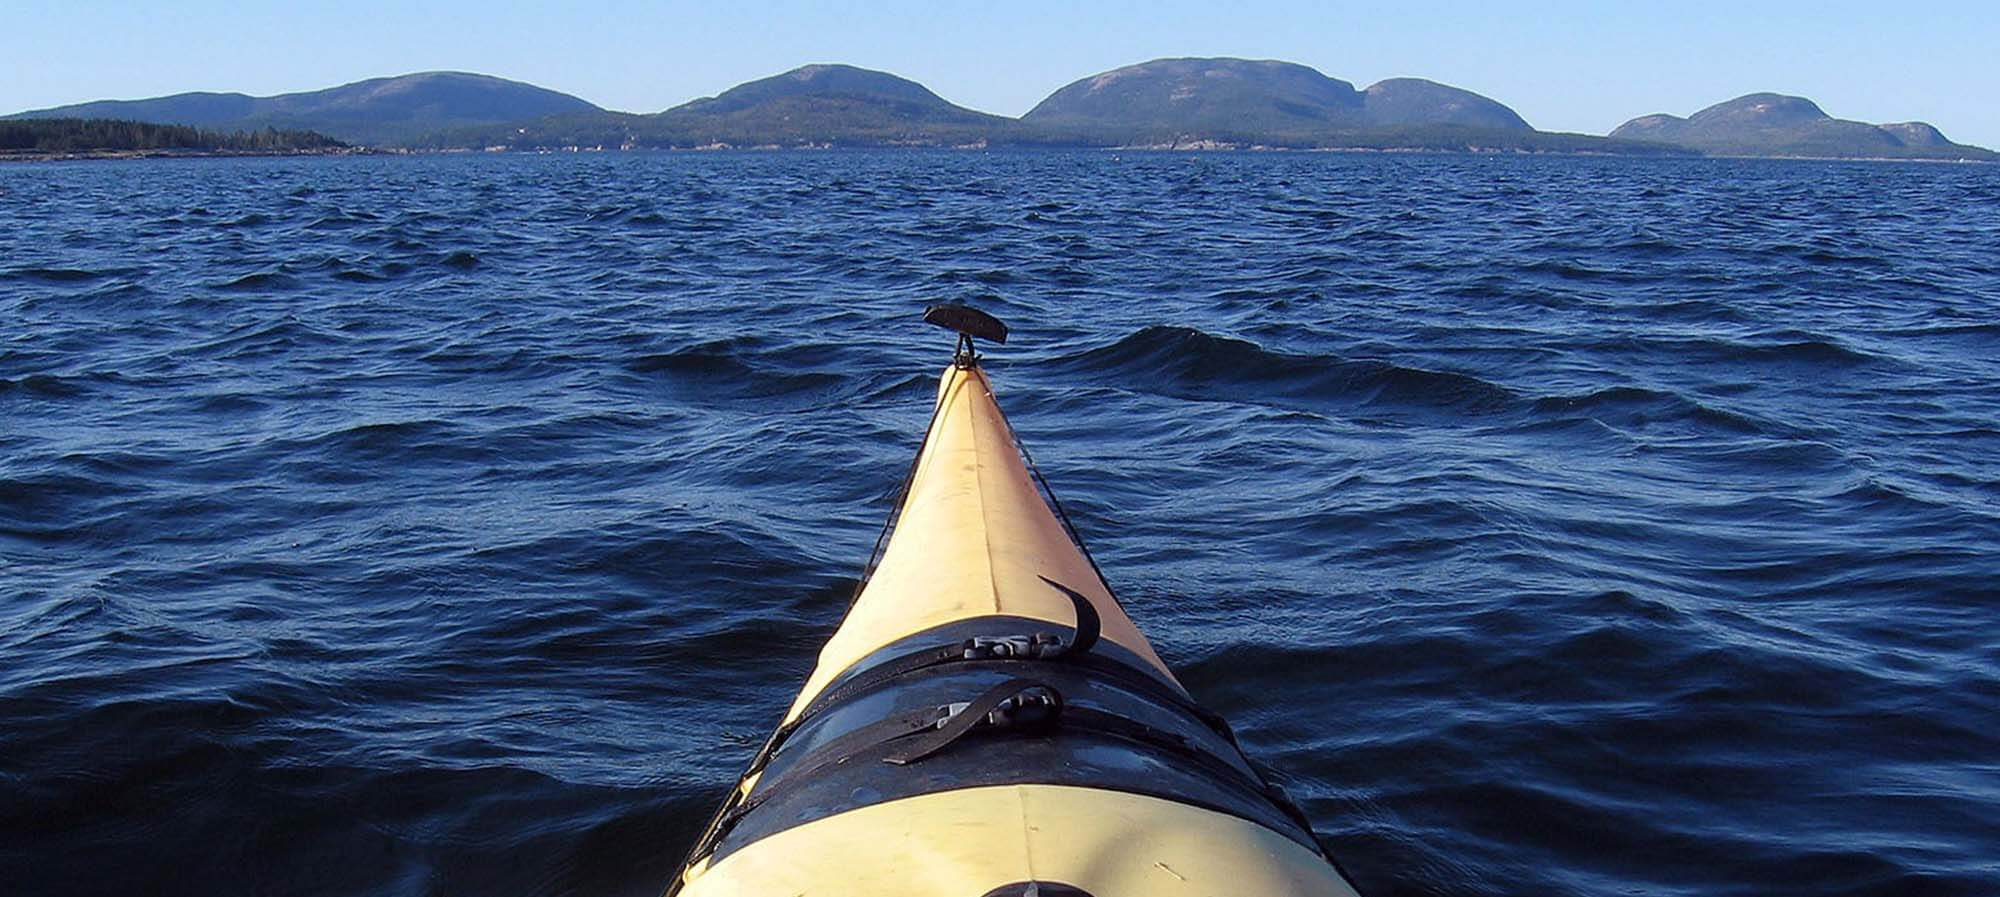 Sea Kayaking Around Mount Desert Island, Maine